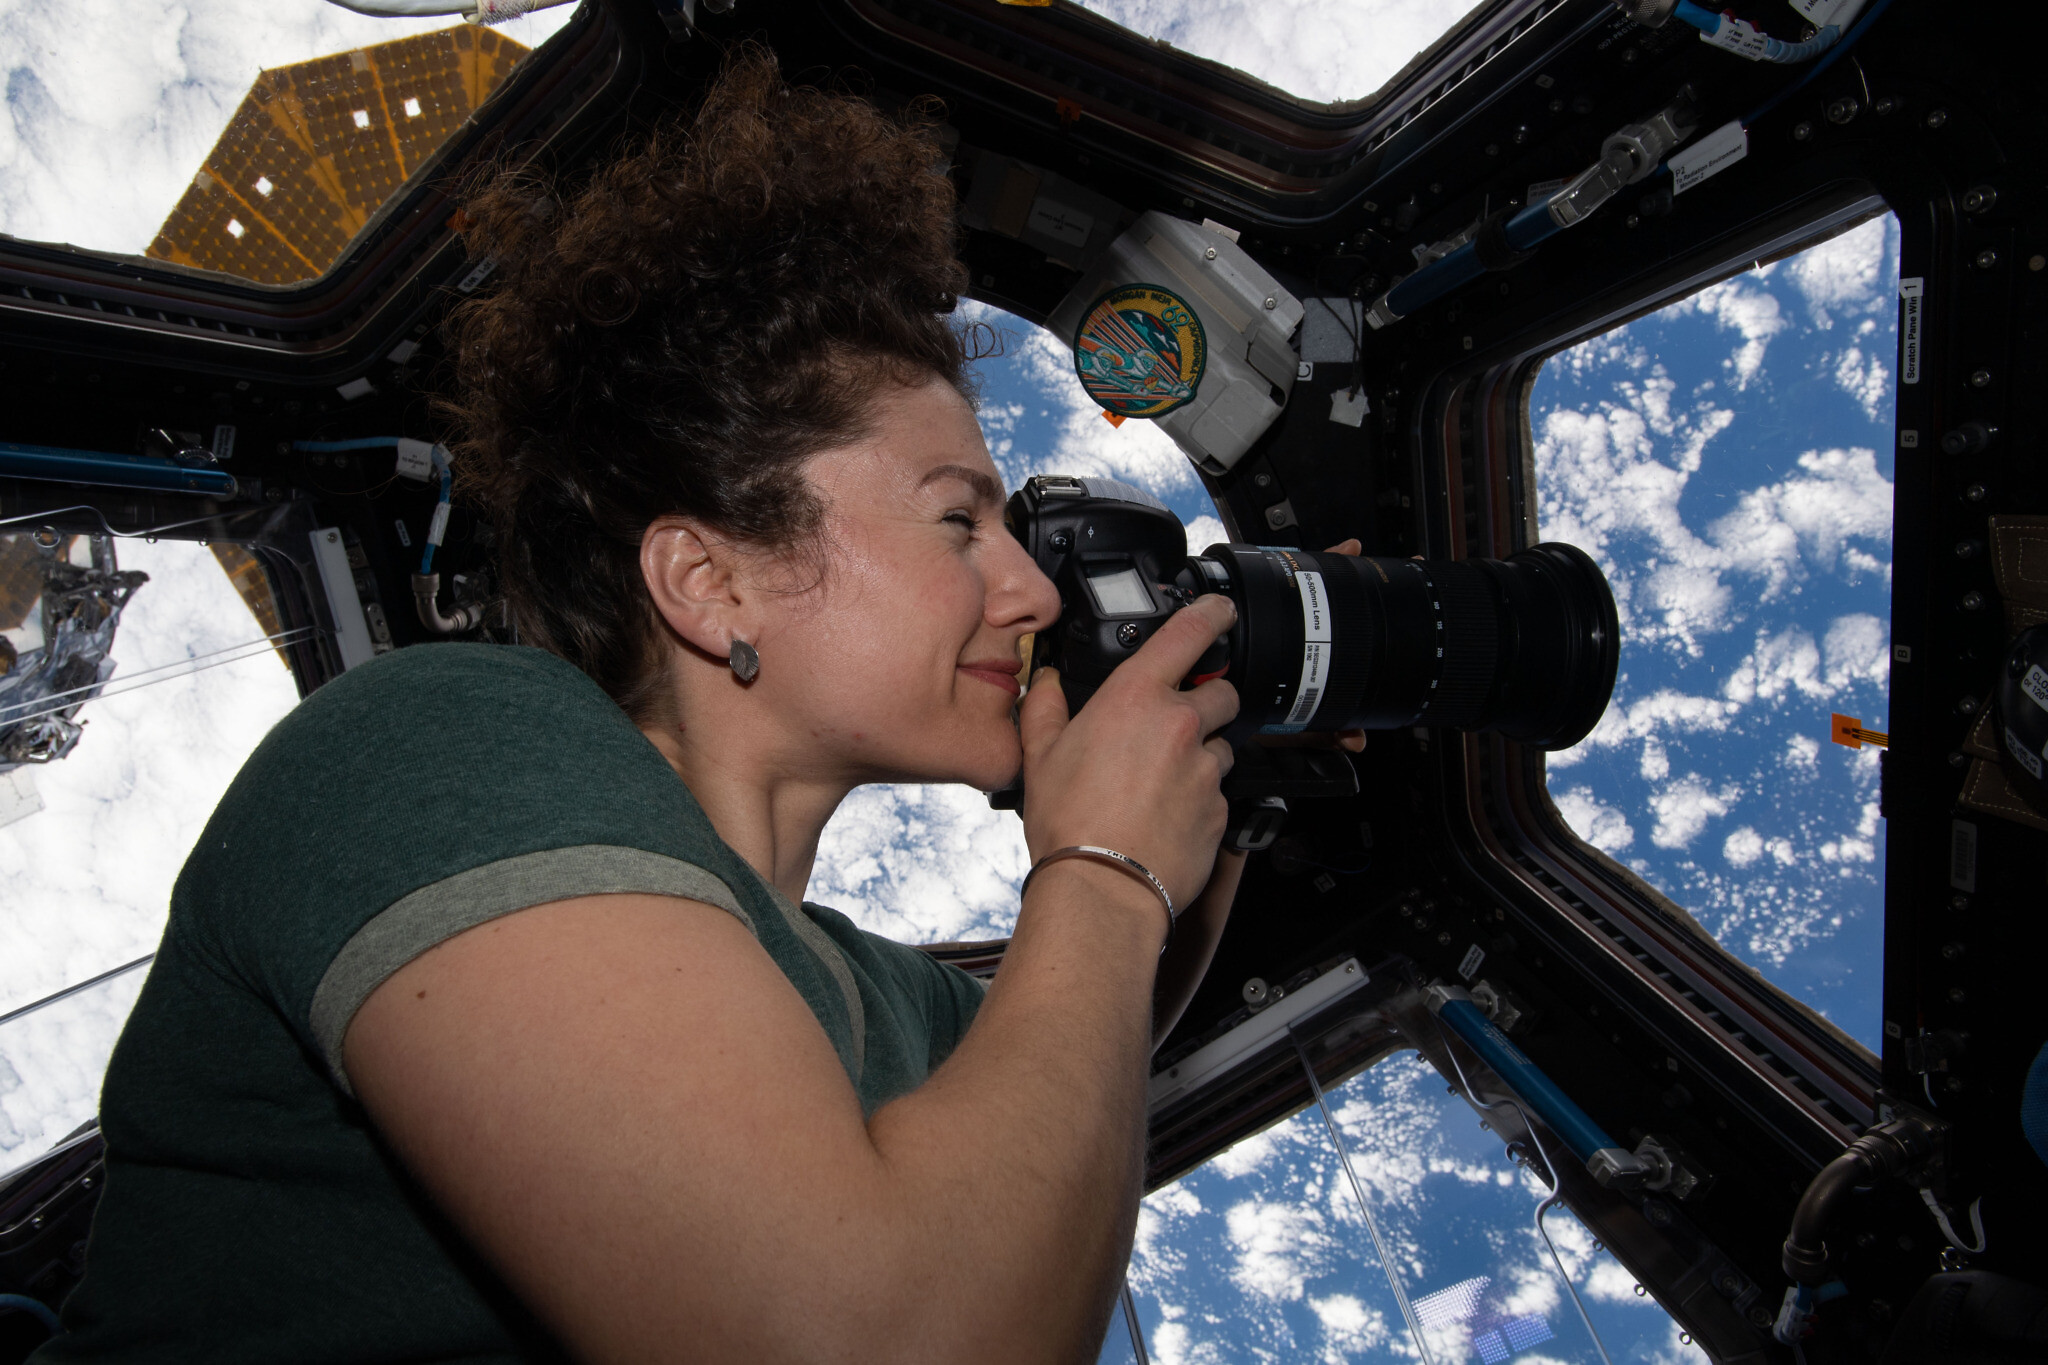 NASA astronaut Jessica Meir take photos of earth from a window of the ISS. (NASA)